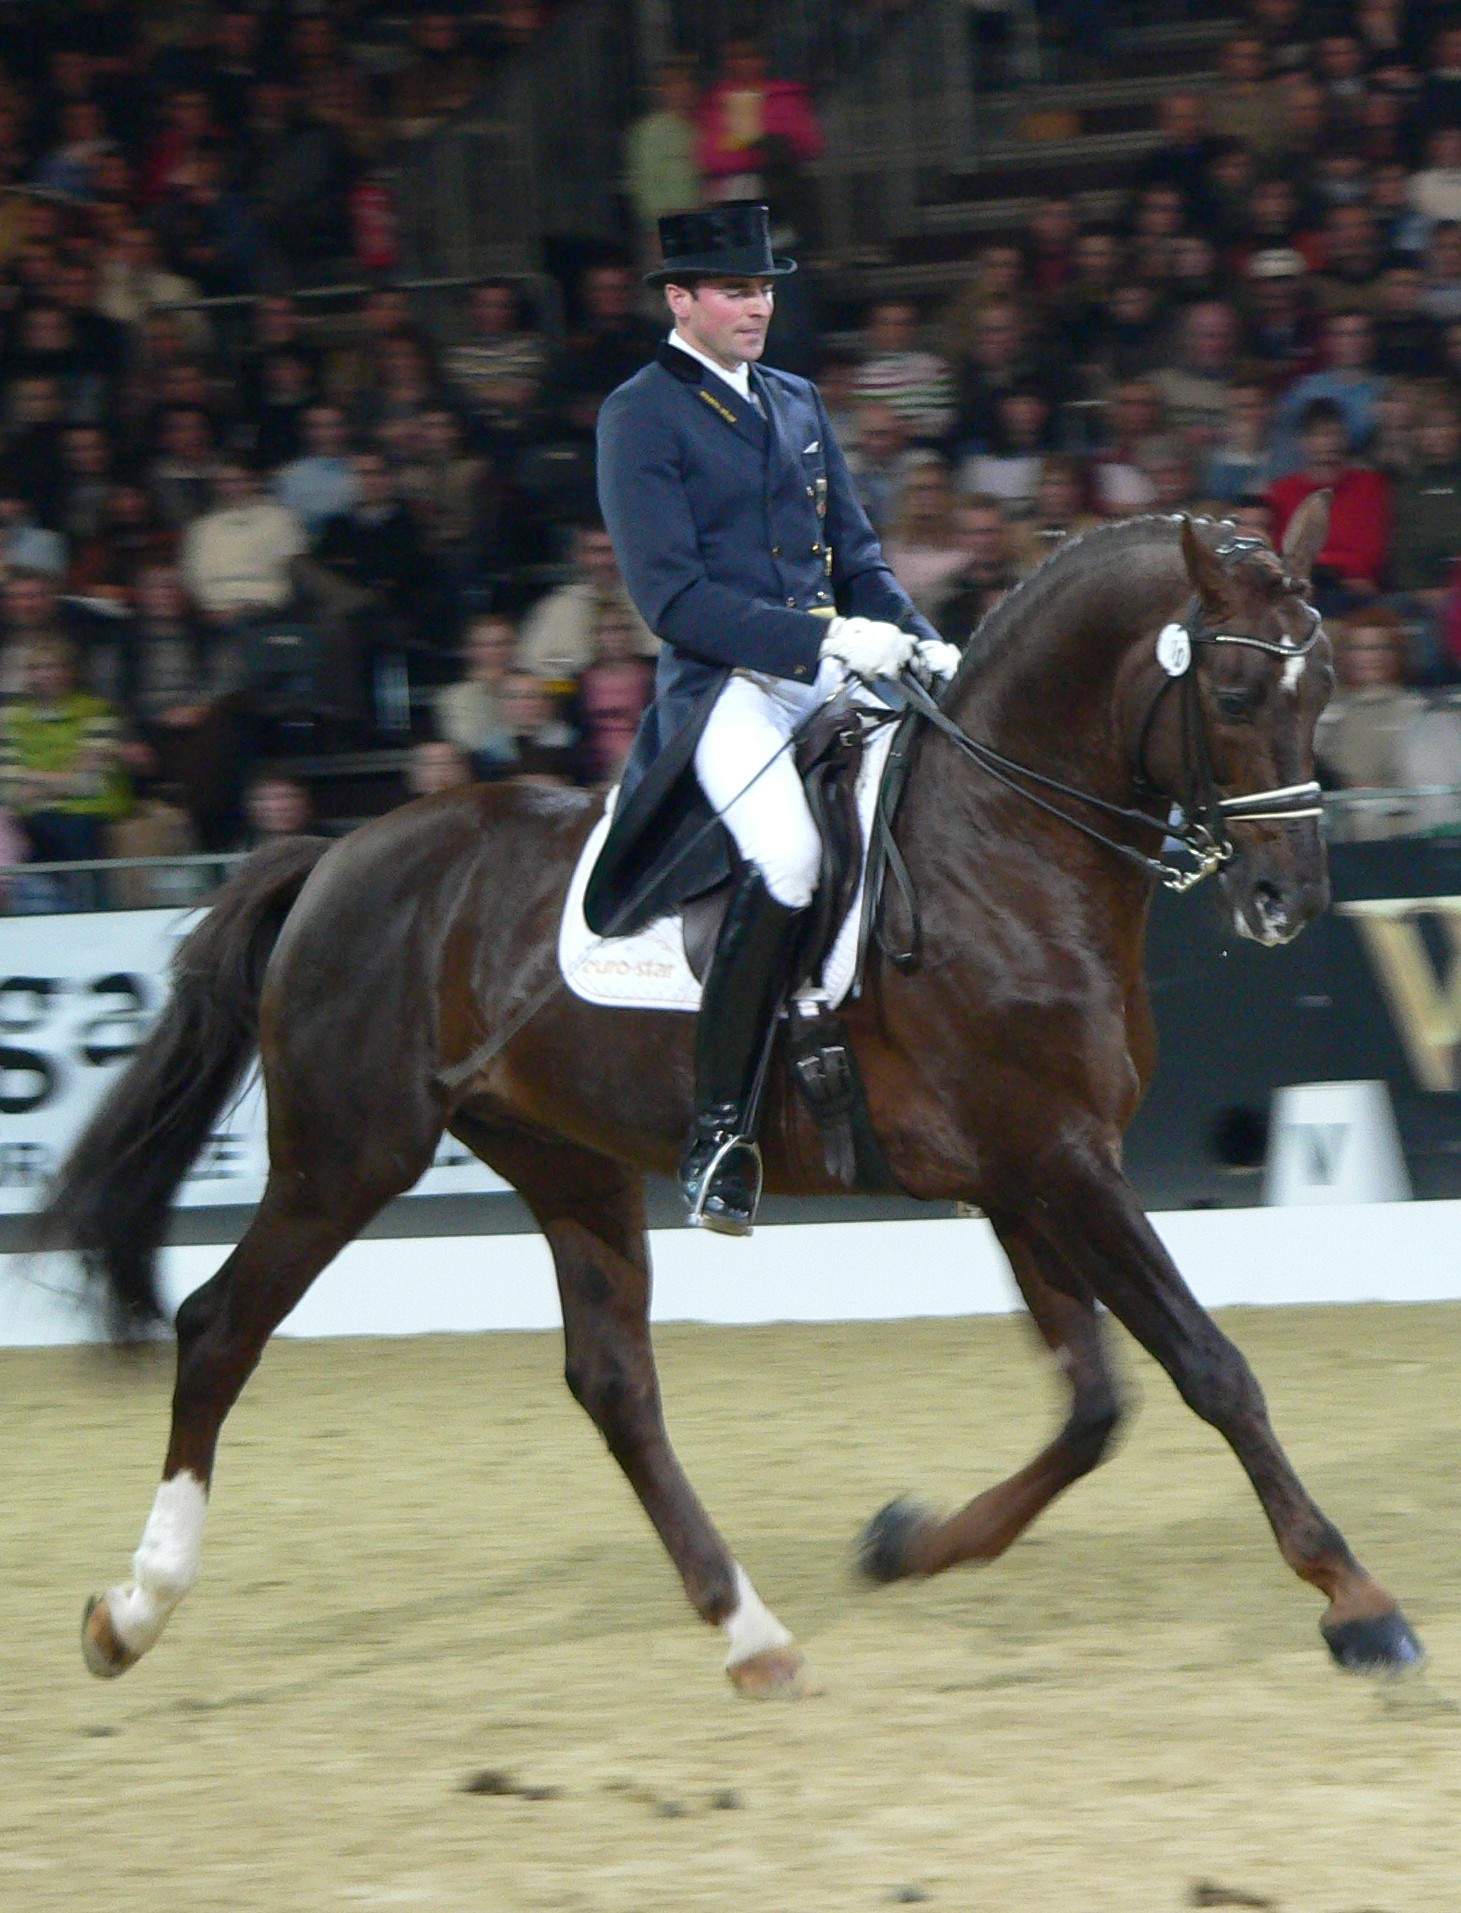 2019 year style- Dressage british rules what to wear